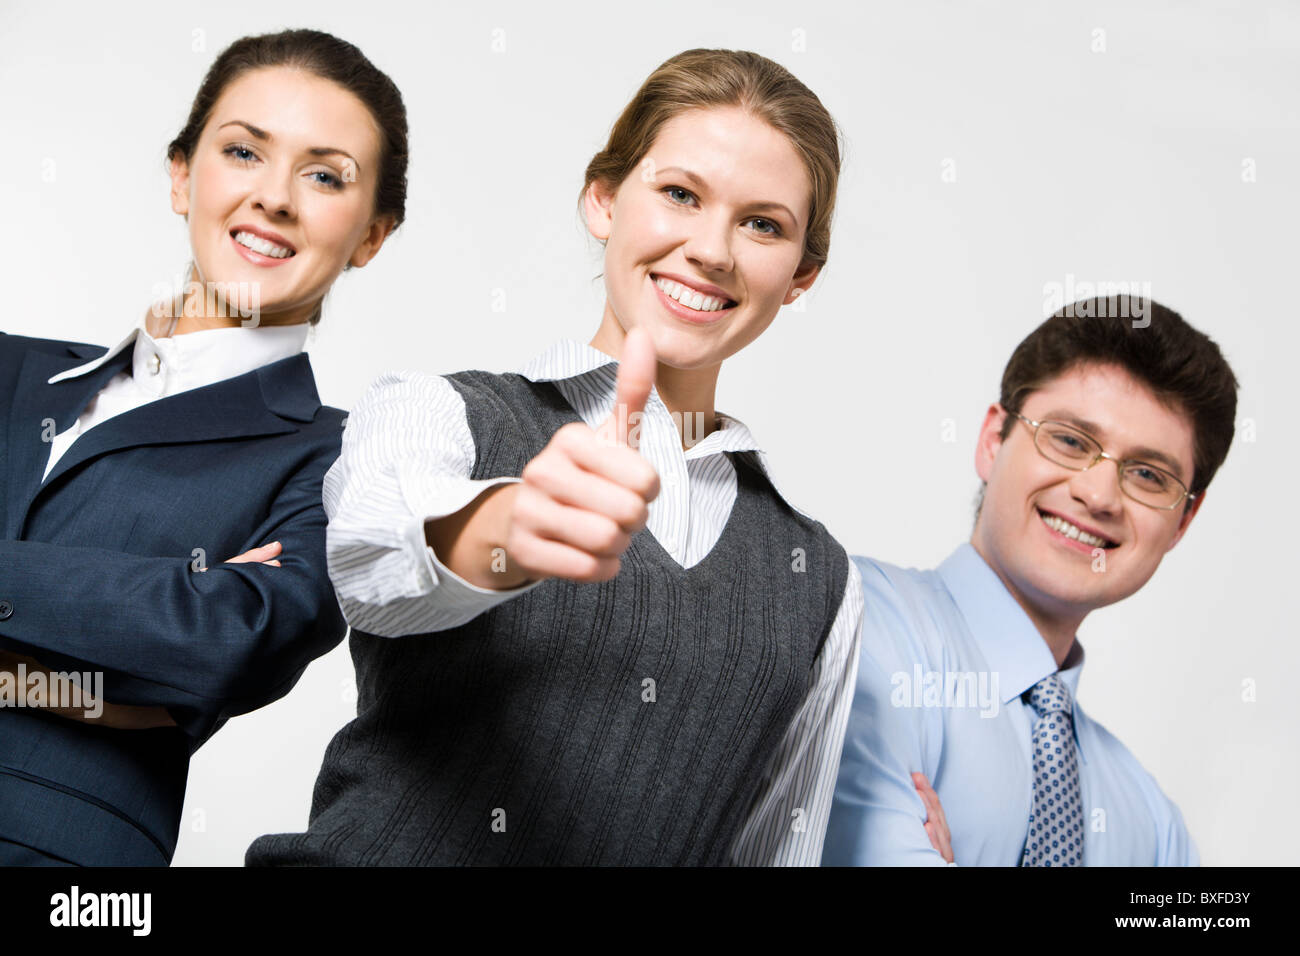 Smiling woman demonstrates thumb up with business people Stock Photo